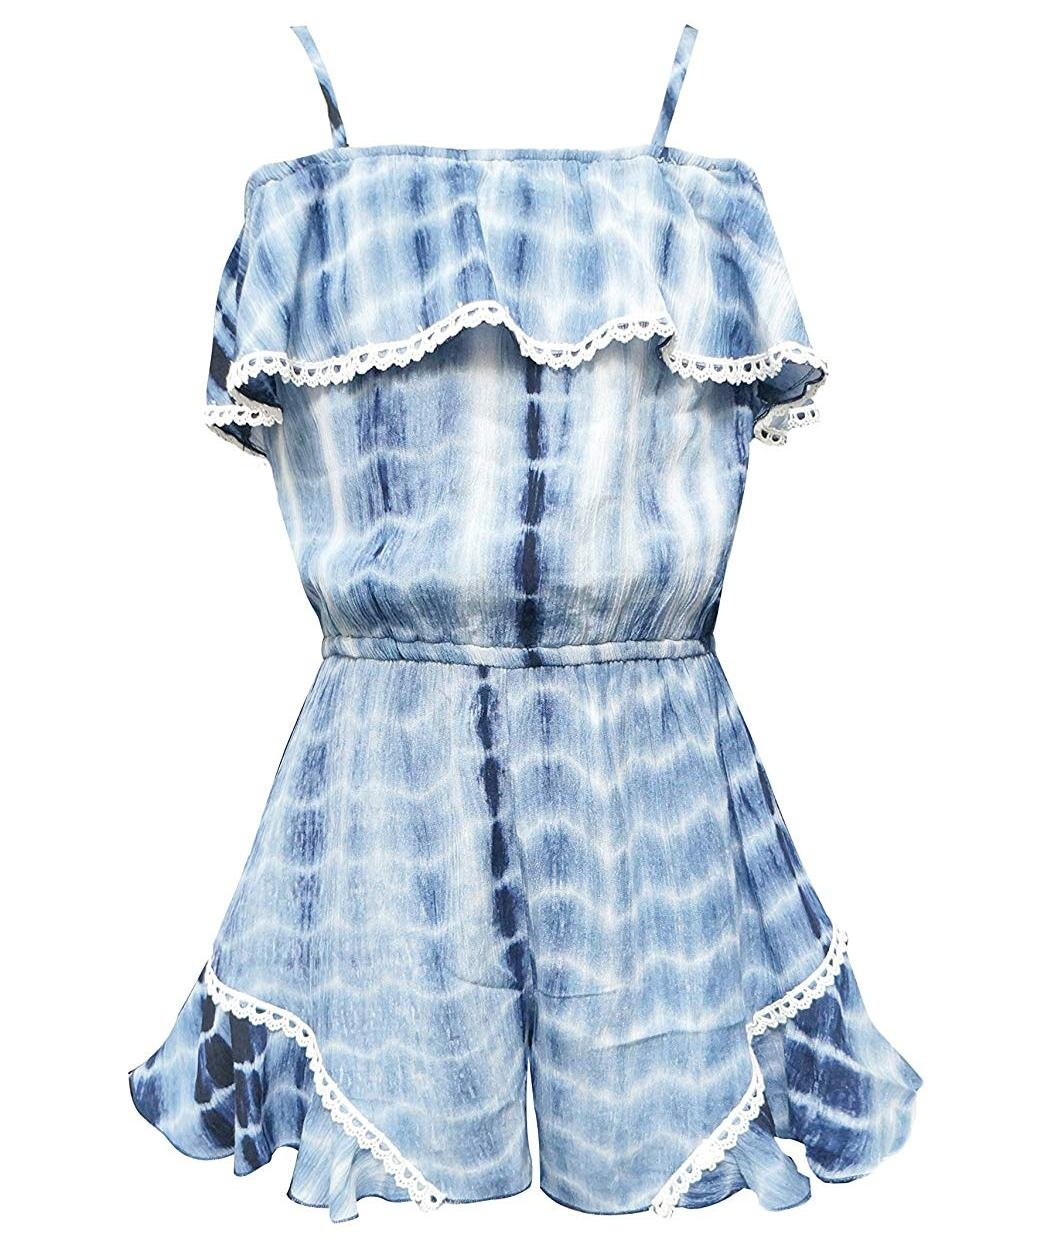 Truly Me, Charming Rompers (with Many Options), 4-6X, 7-16 (10, Blue Tie Dye)